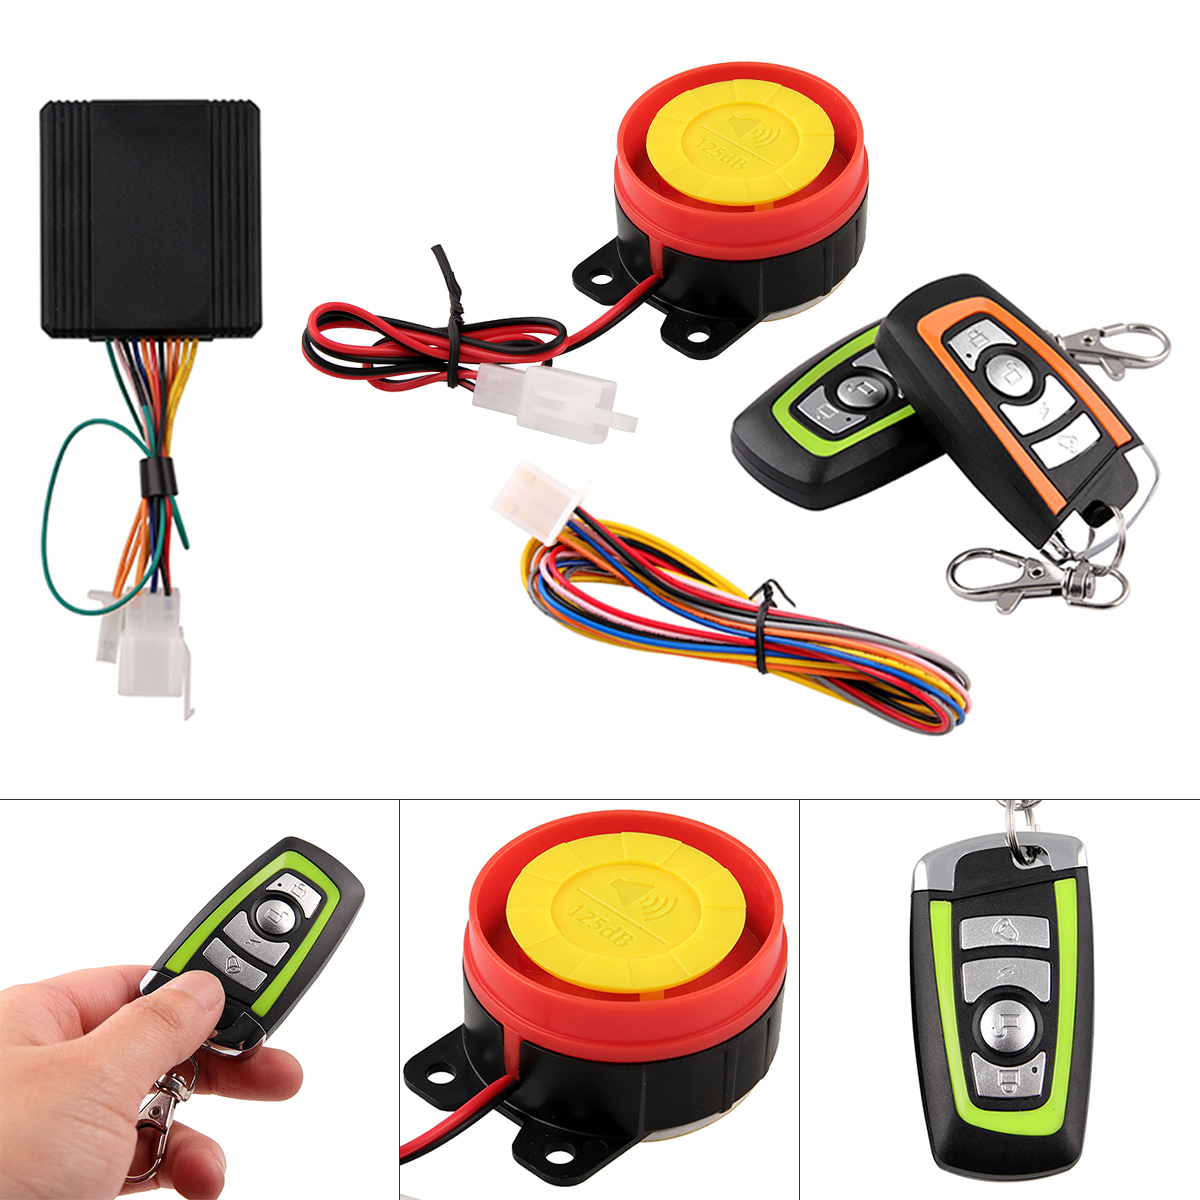 12V 125db Motorcycle Two Way Burglar Alarm Scooter Anti-theft Alarm With Engine Start Remote Control Key For Anti-theft System